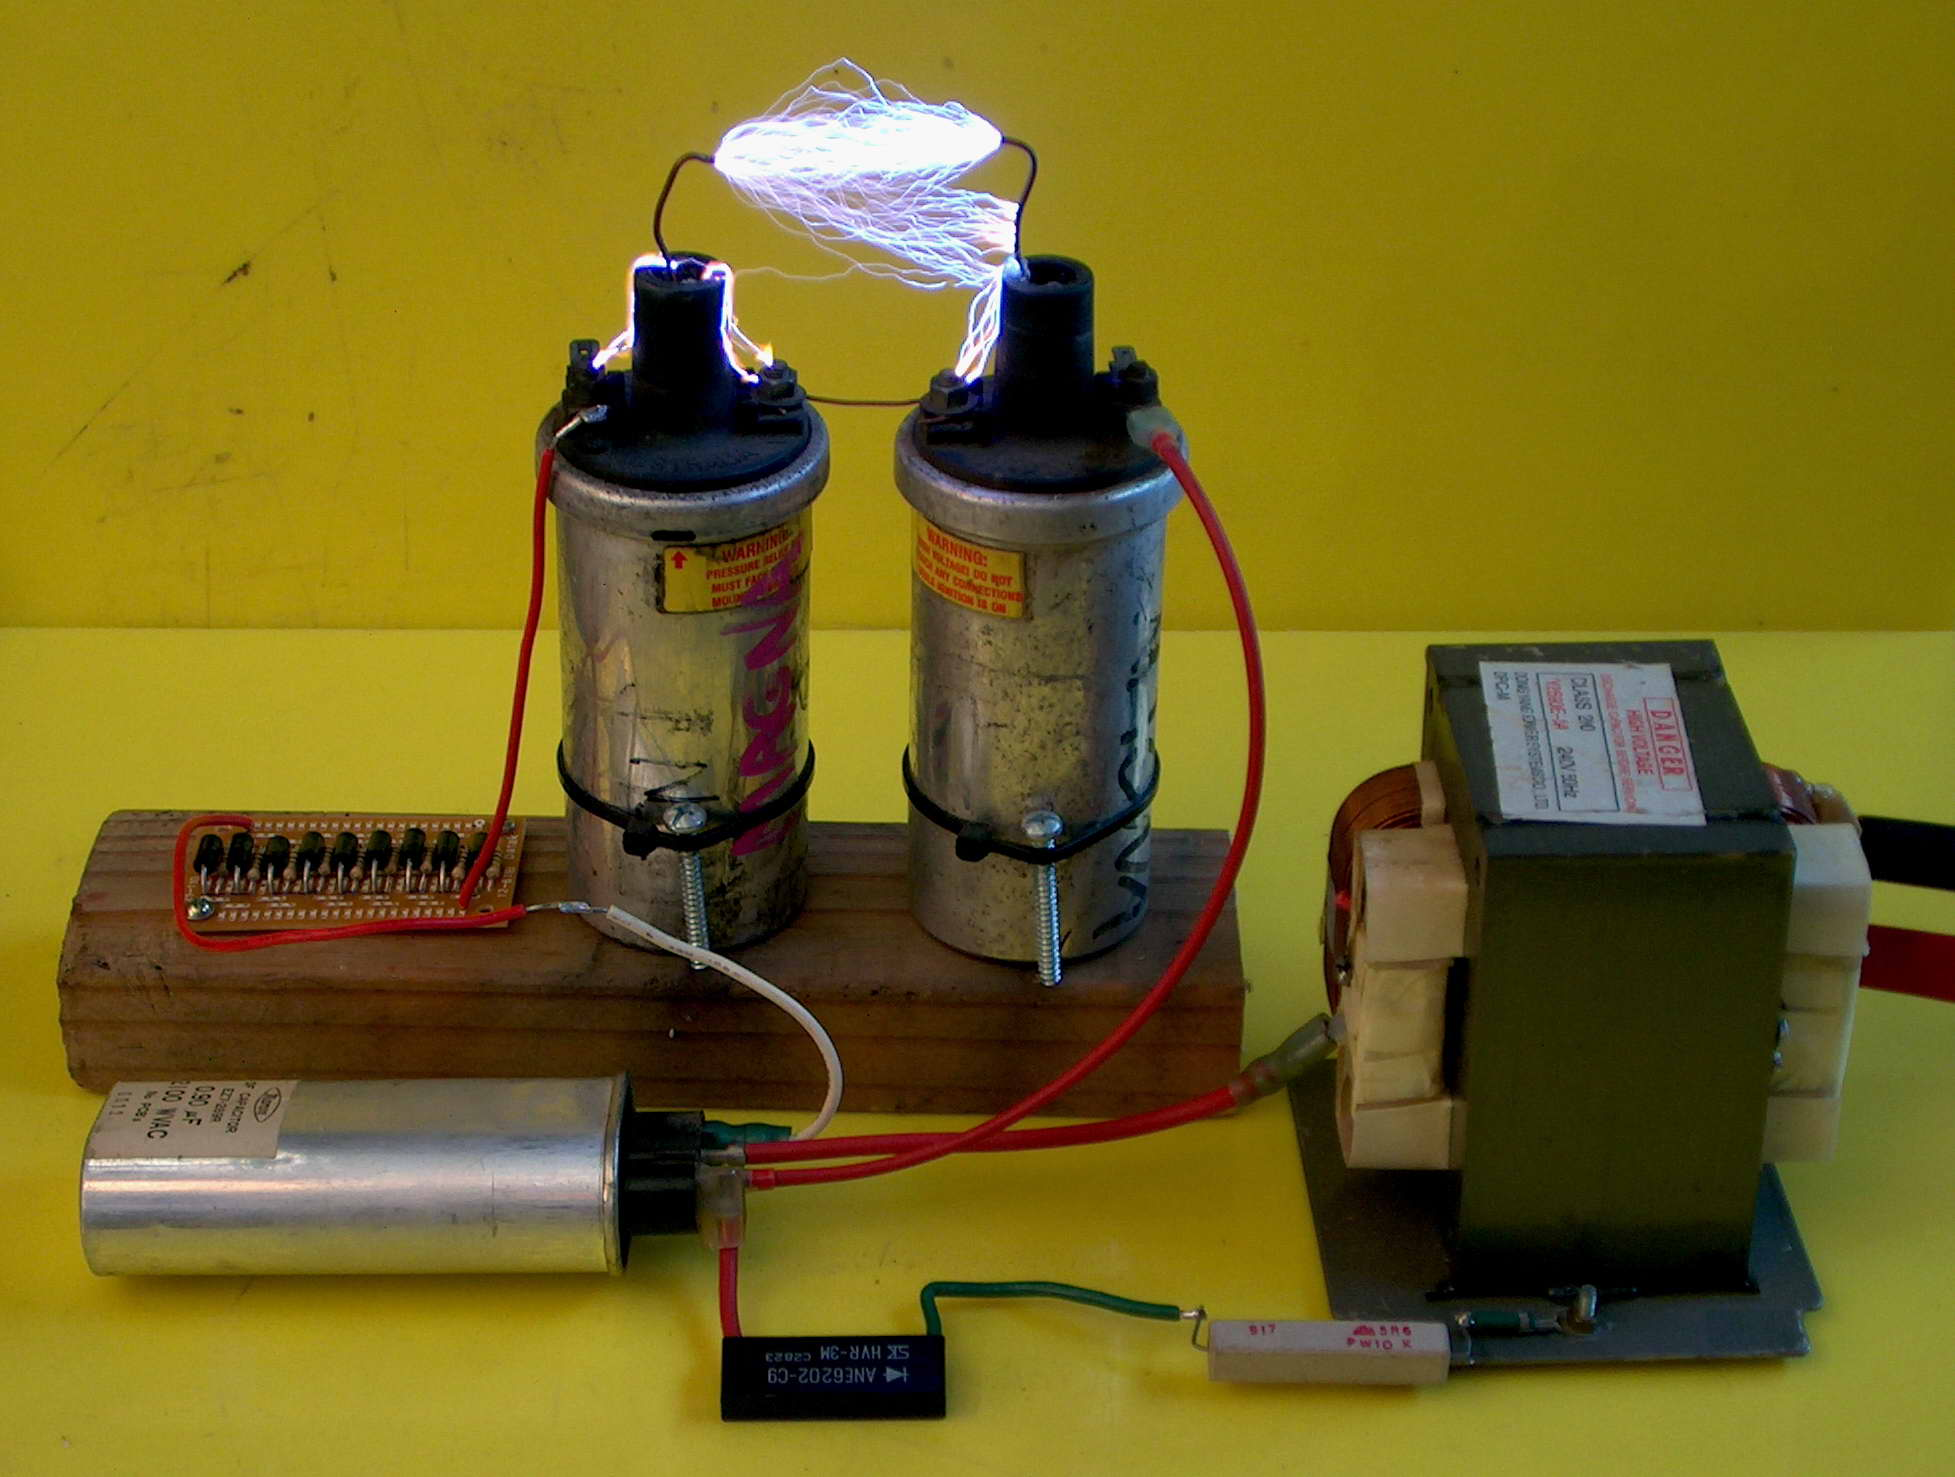 Make This Small Tesla Coil as well Free energy collector circuit further Slayer Exciter Questions And Problem also An Overview of Medical Imaging besides Atomic Spectroscopy Basic Principles And Instruments. on tesla coil schematic diagram